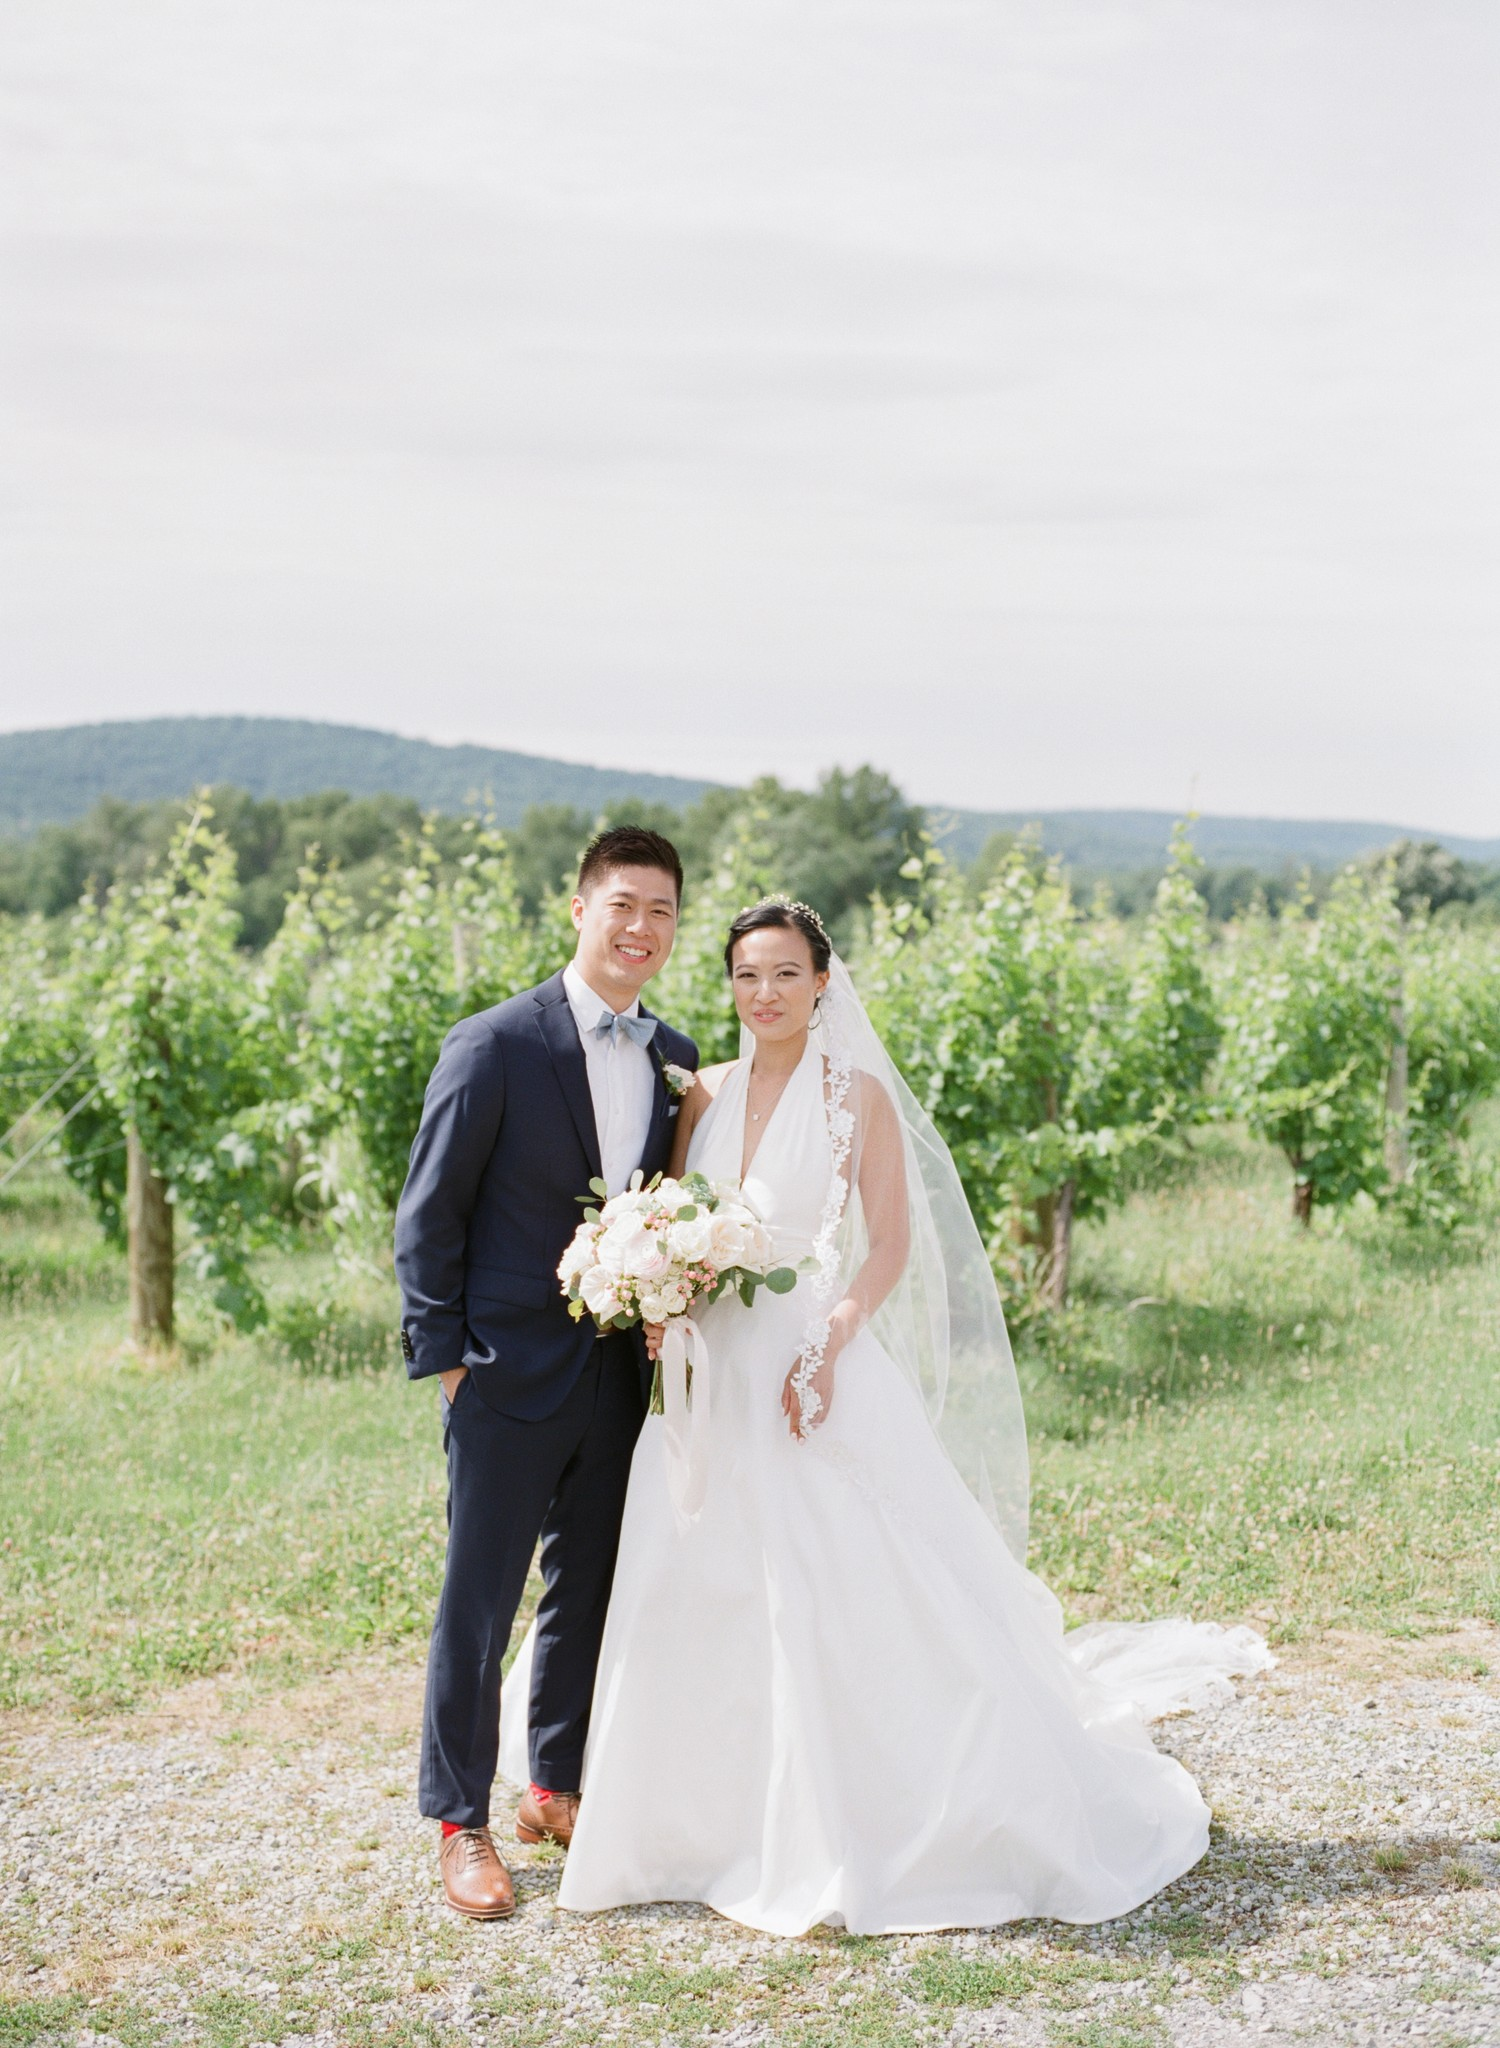 VA-Breaux-Vineyards-Summer-Wedding-Dusty-Blue-21.jpg